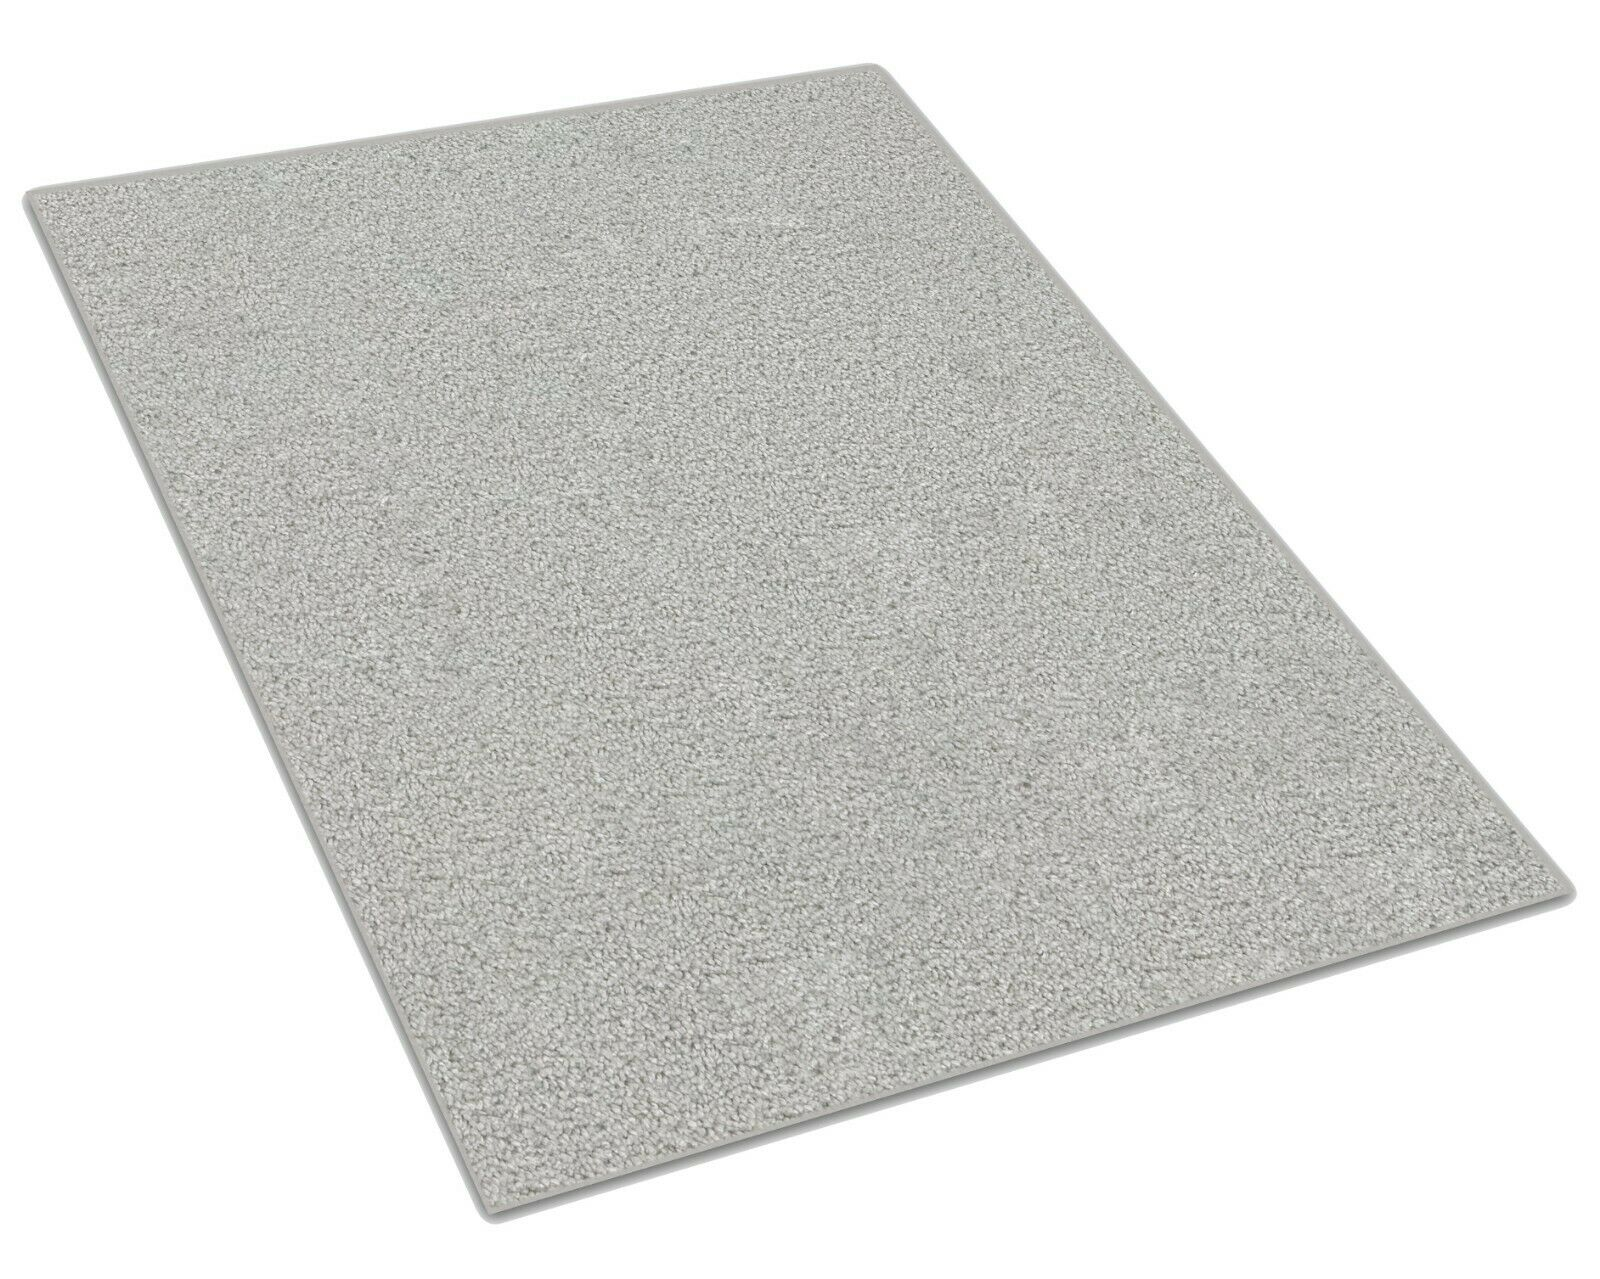 Koeckritz Rugs Exceptional Morning Fog | Plush Indoor Area R